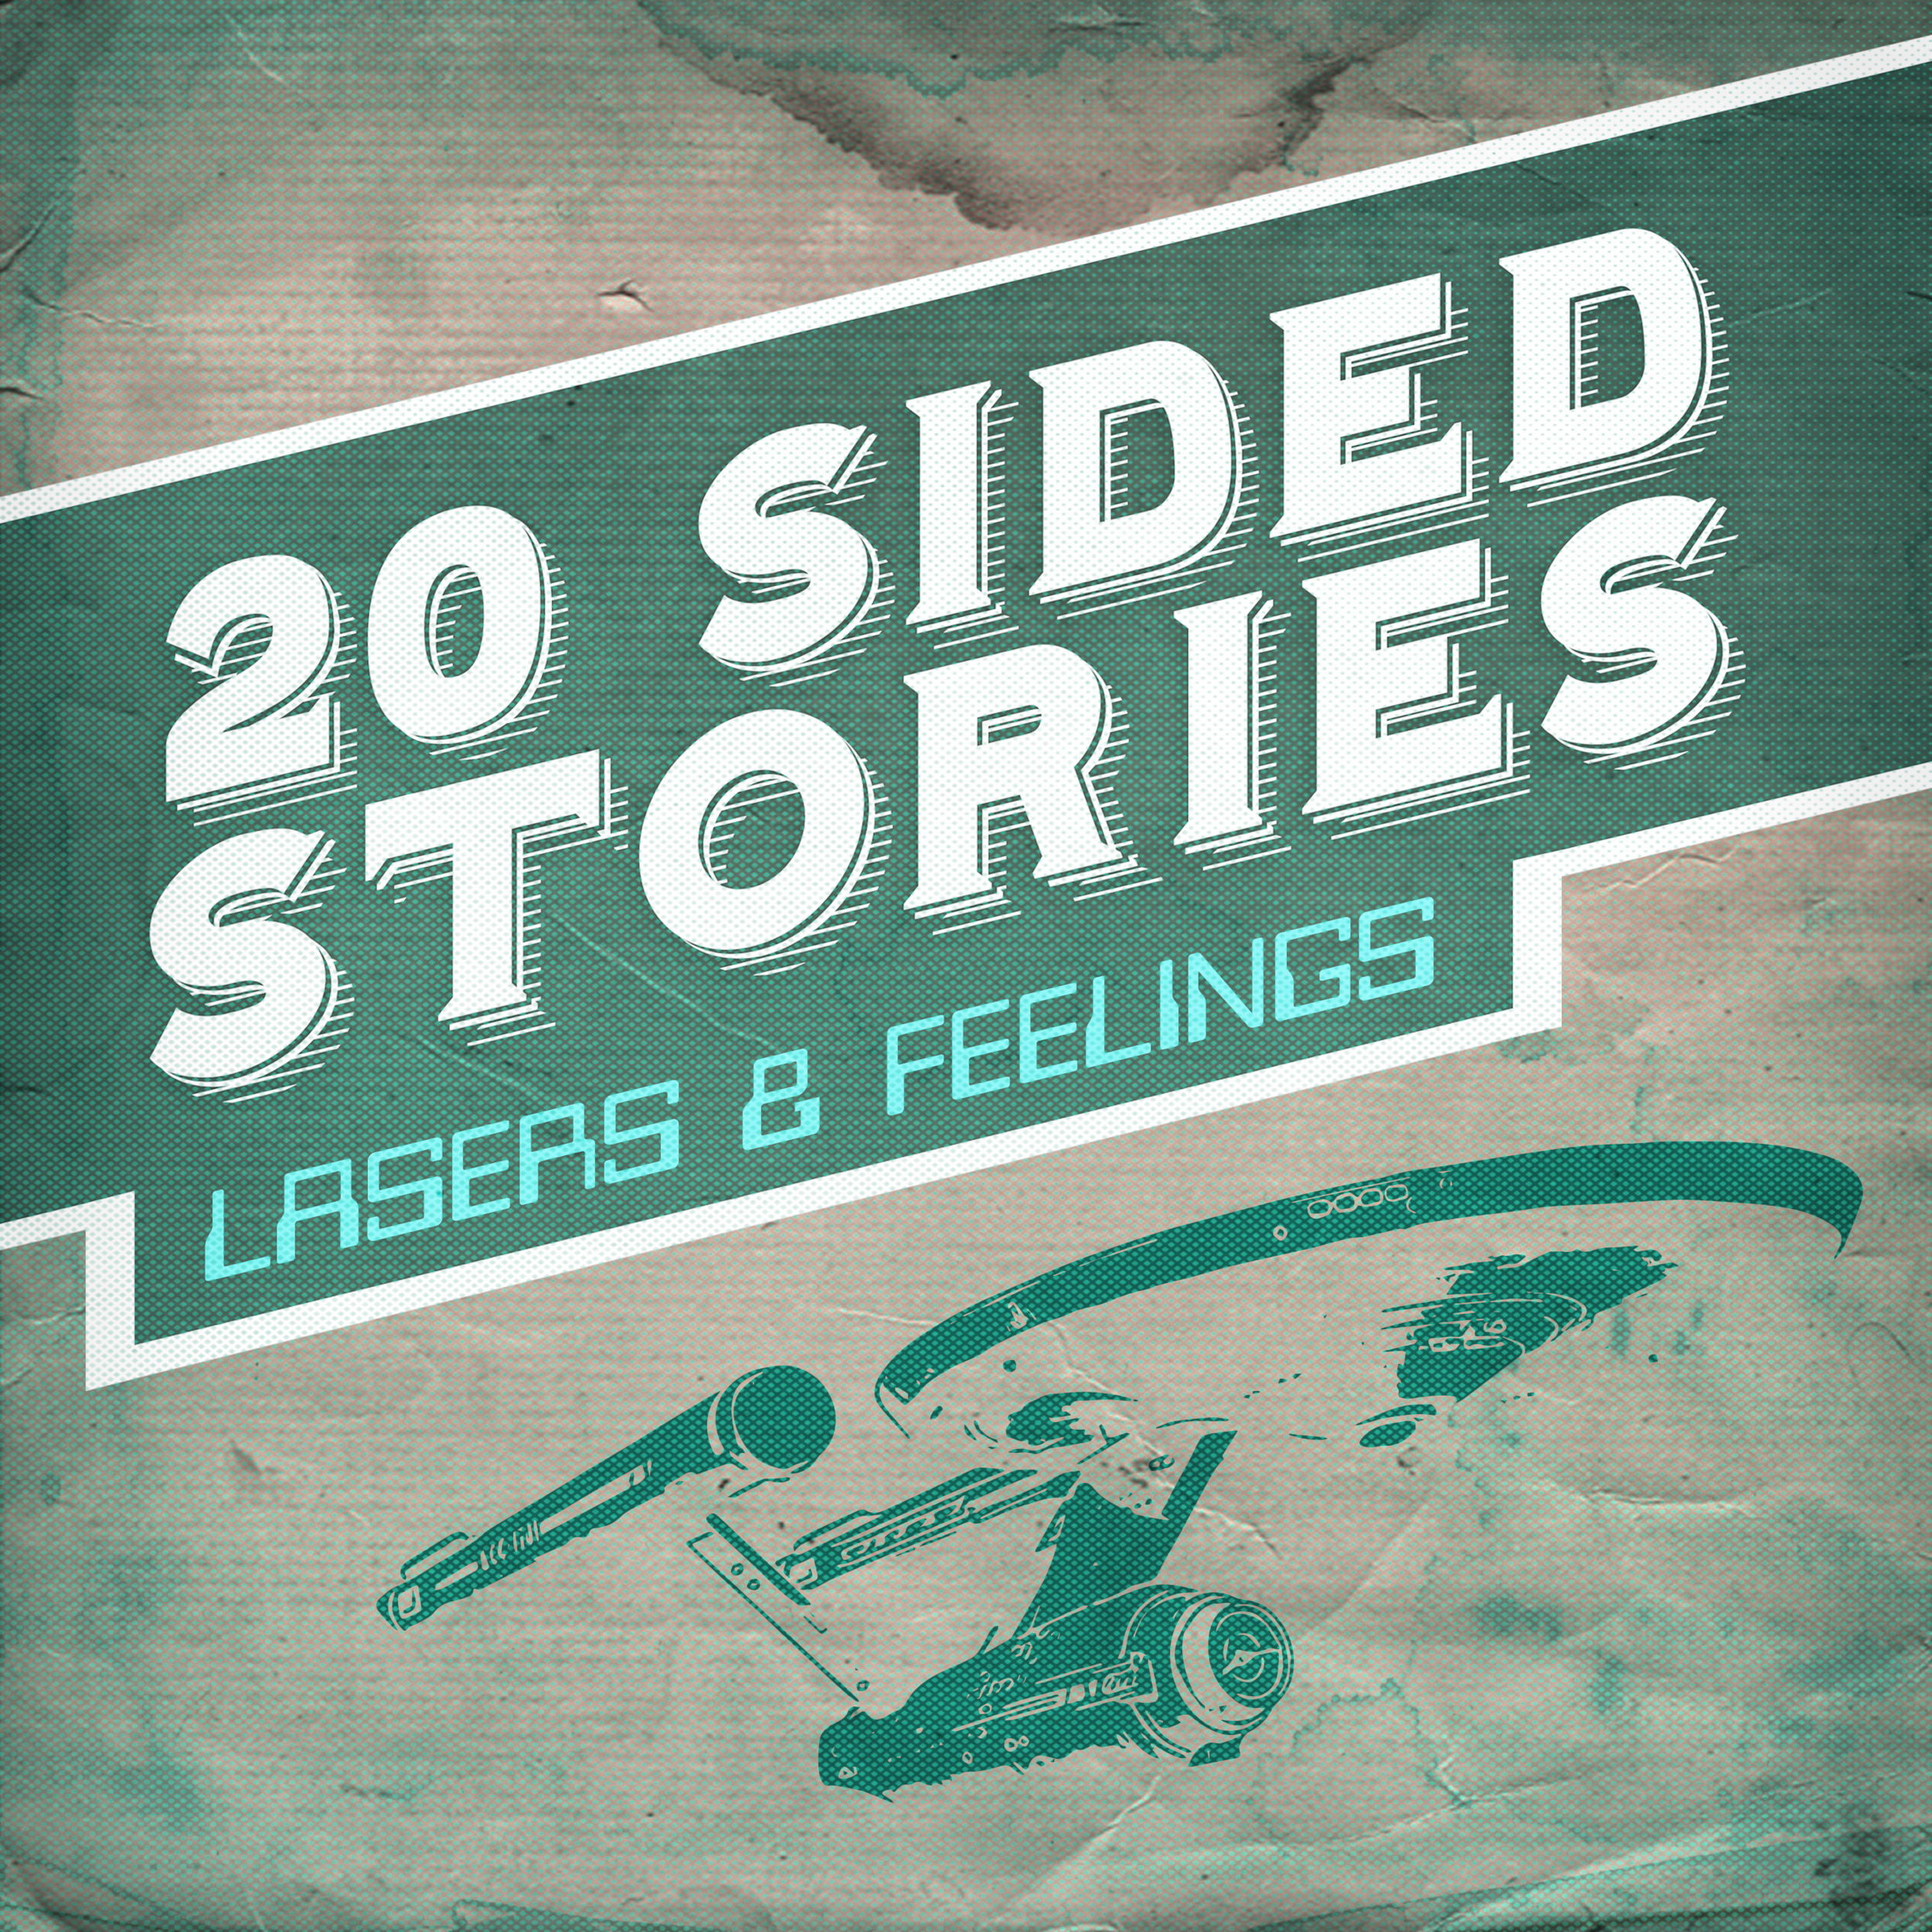 Lasers & Feelings cover art, featuring a space ship